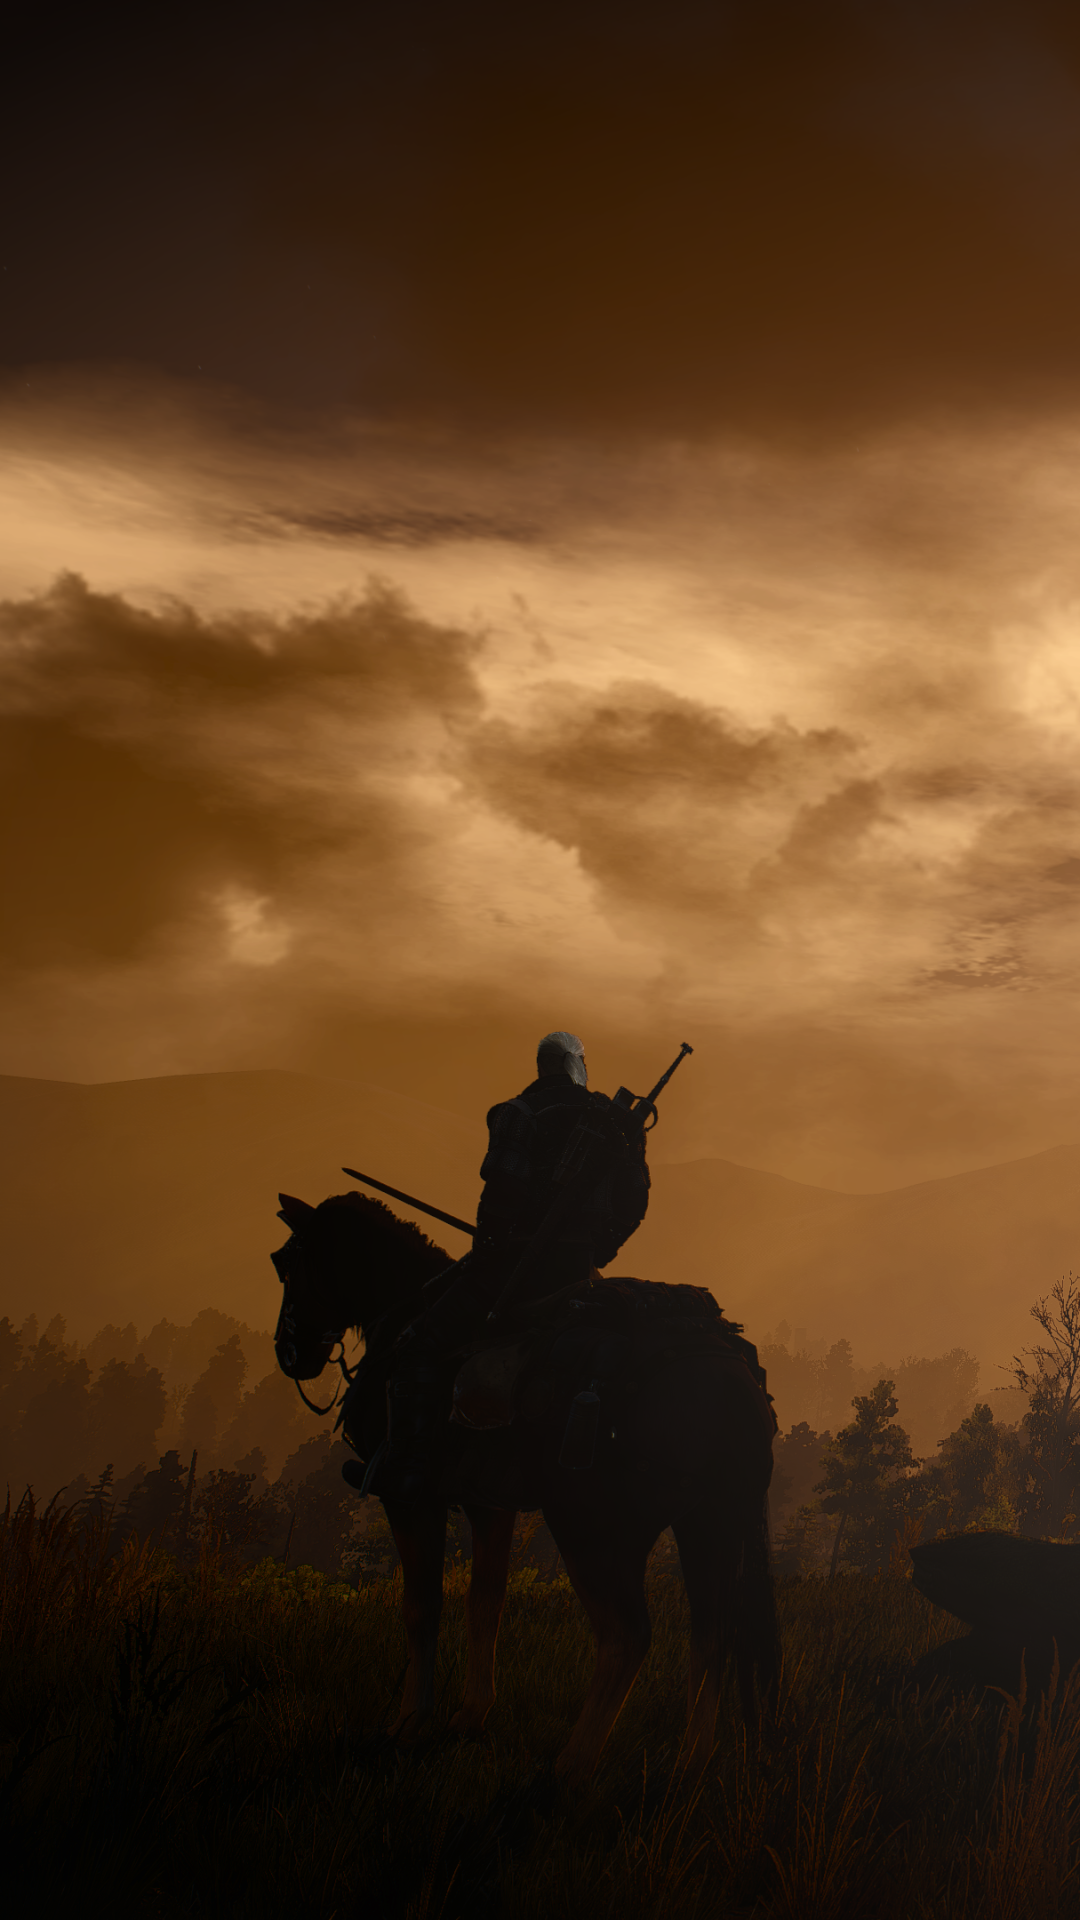 Download-this-iPhone-Plus-Video-Game-The-Witcher-Wild-Hunt-1080x1920-for-all-your-wallpaper-wpc5804343